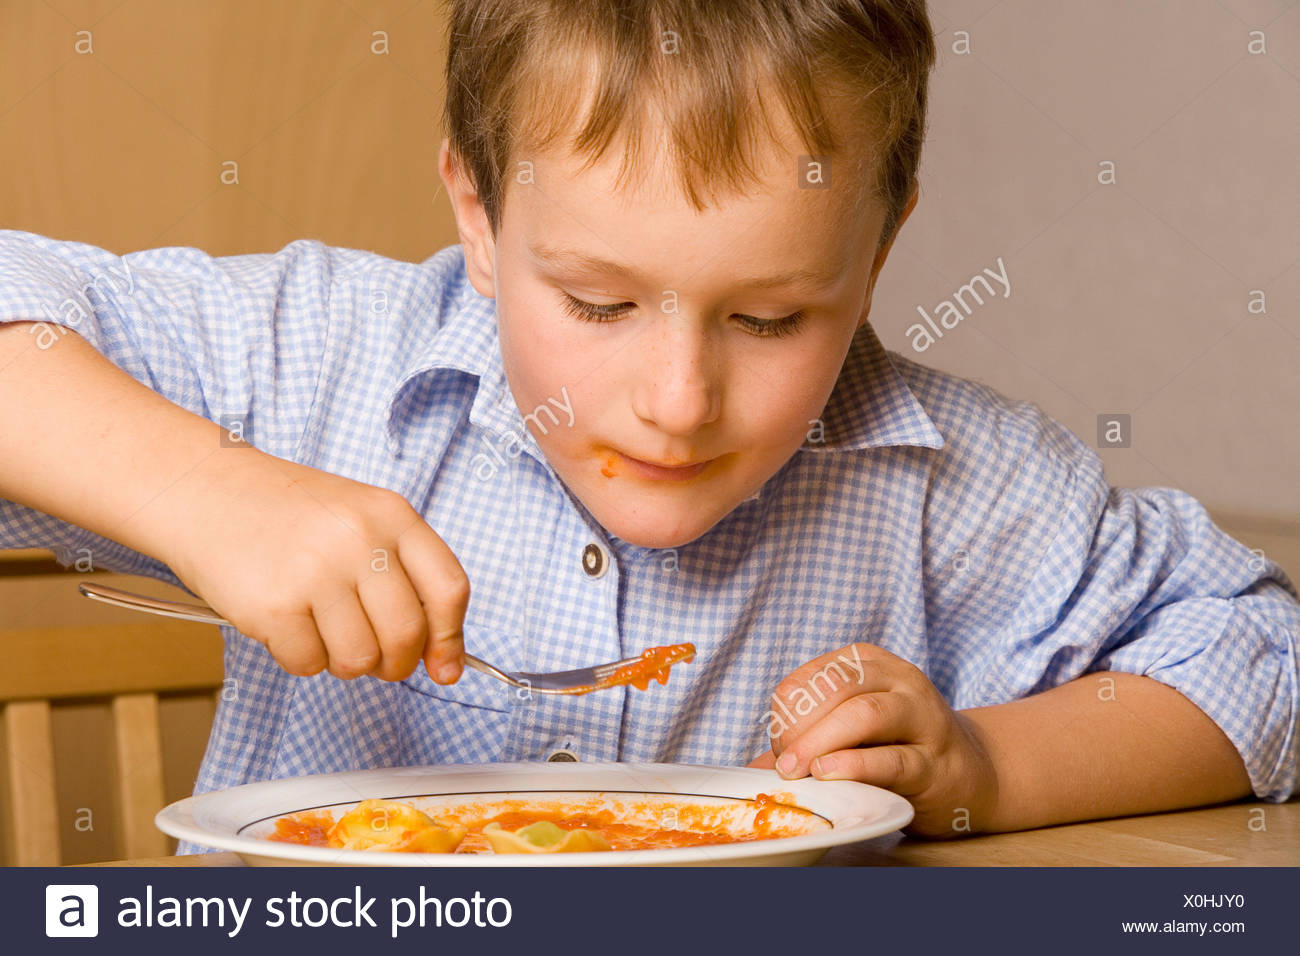 Portrait of young boy eating pasta Photo Stock